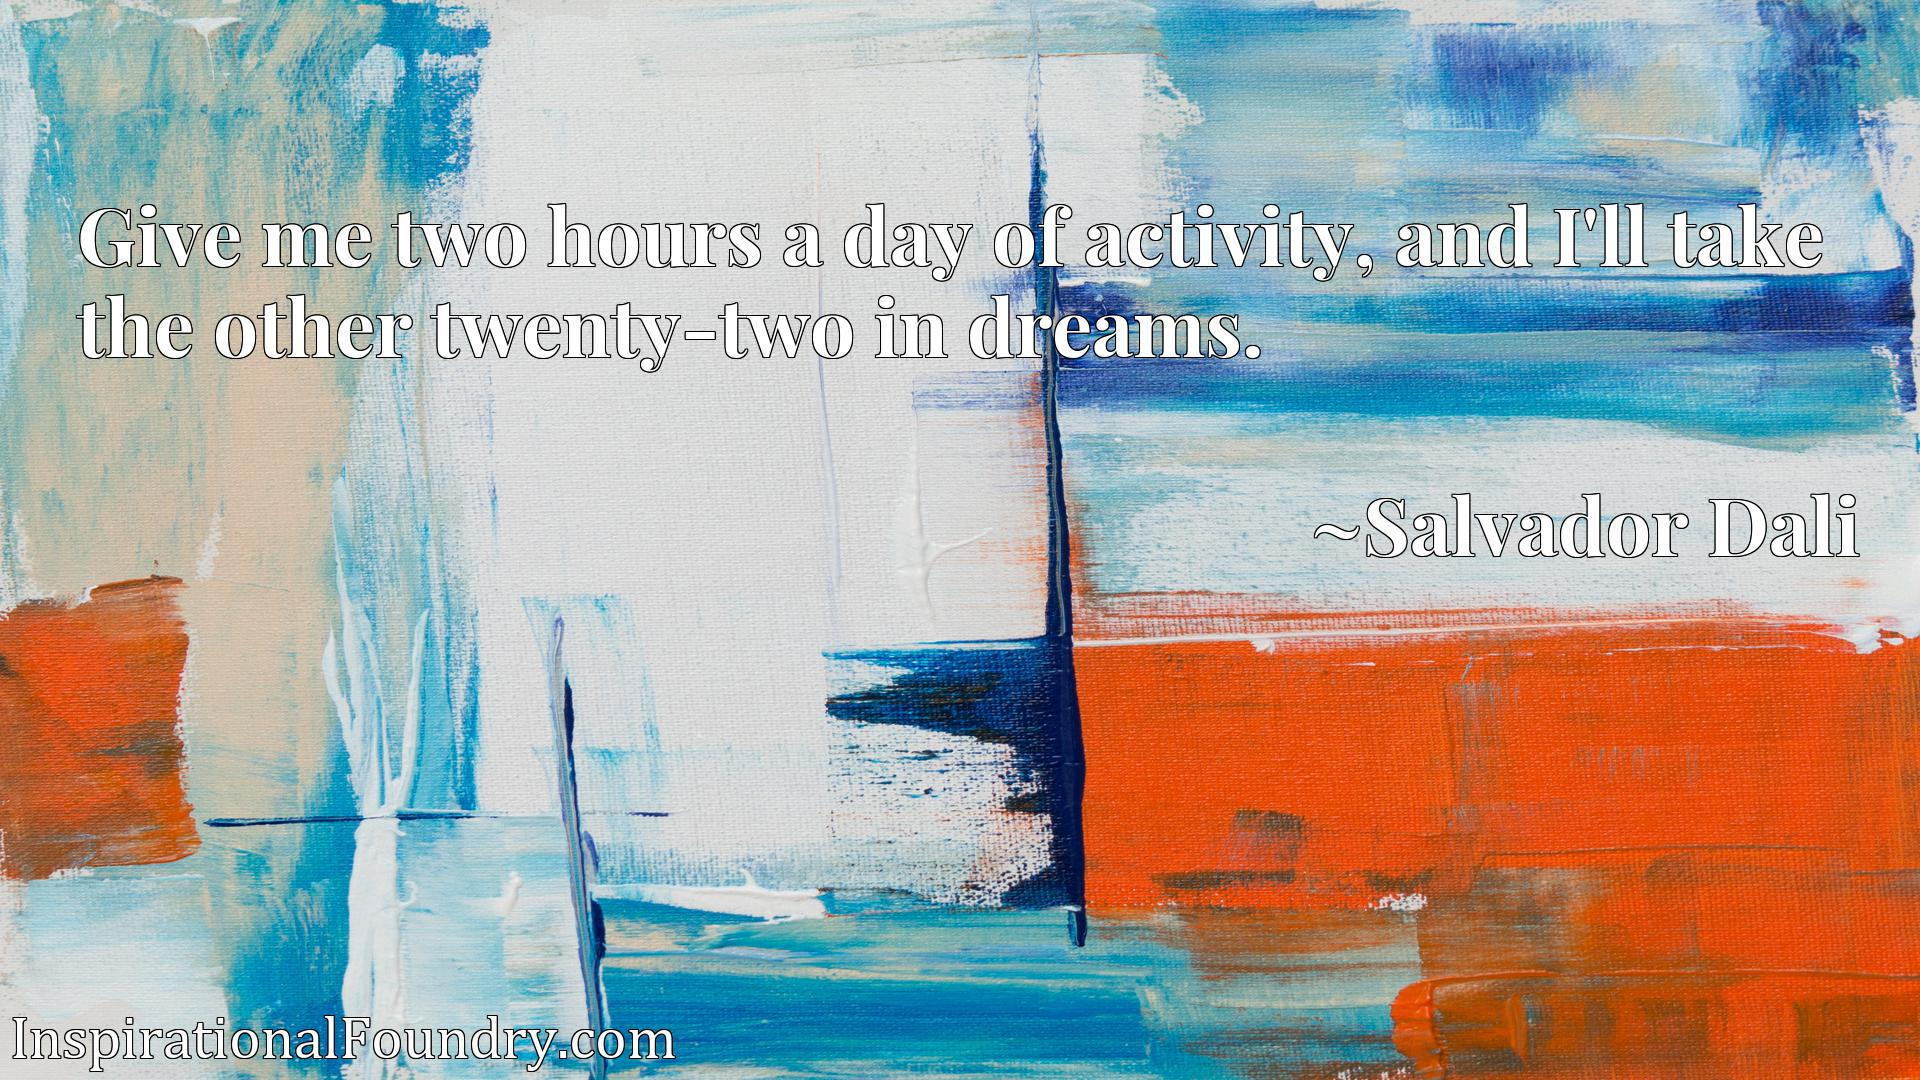 Quote Picture :Give me two hours a day of activity, and I'll take the other twenty-two in dreams.